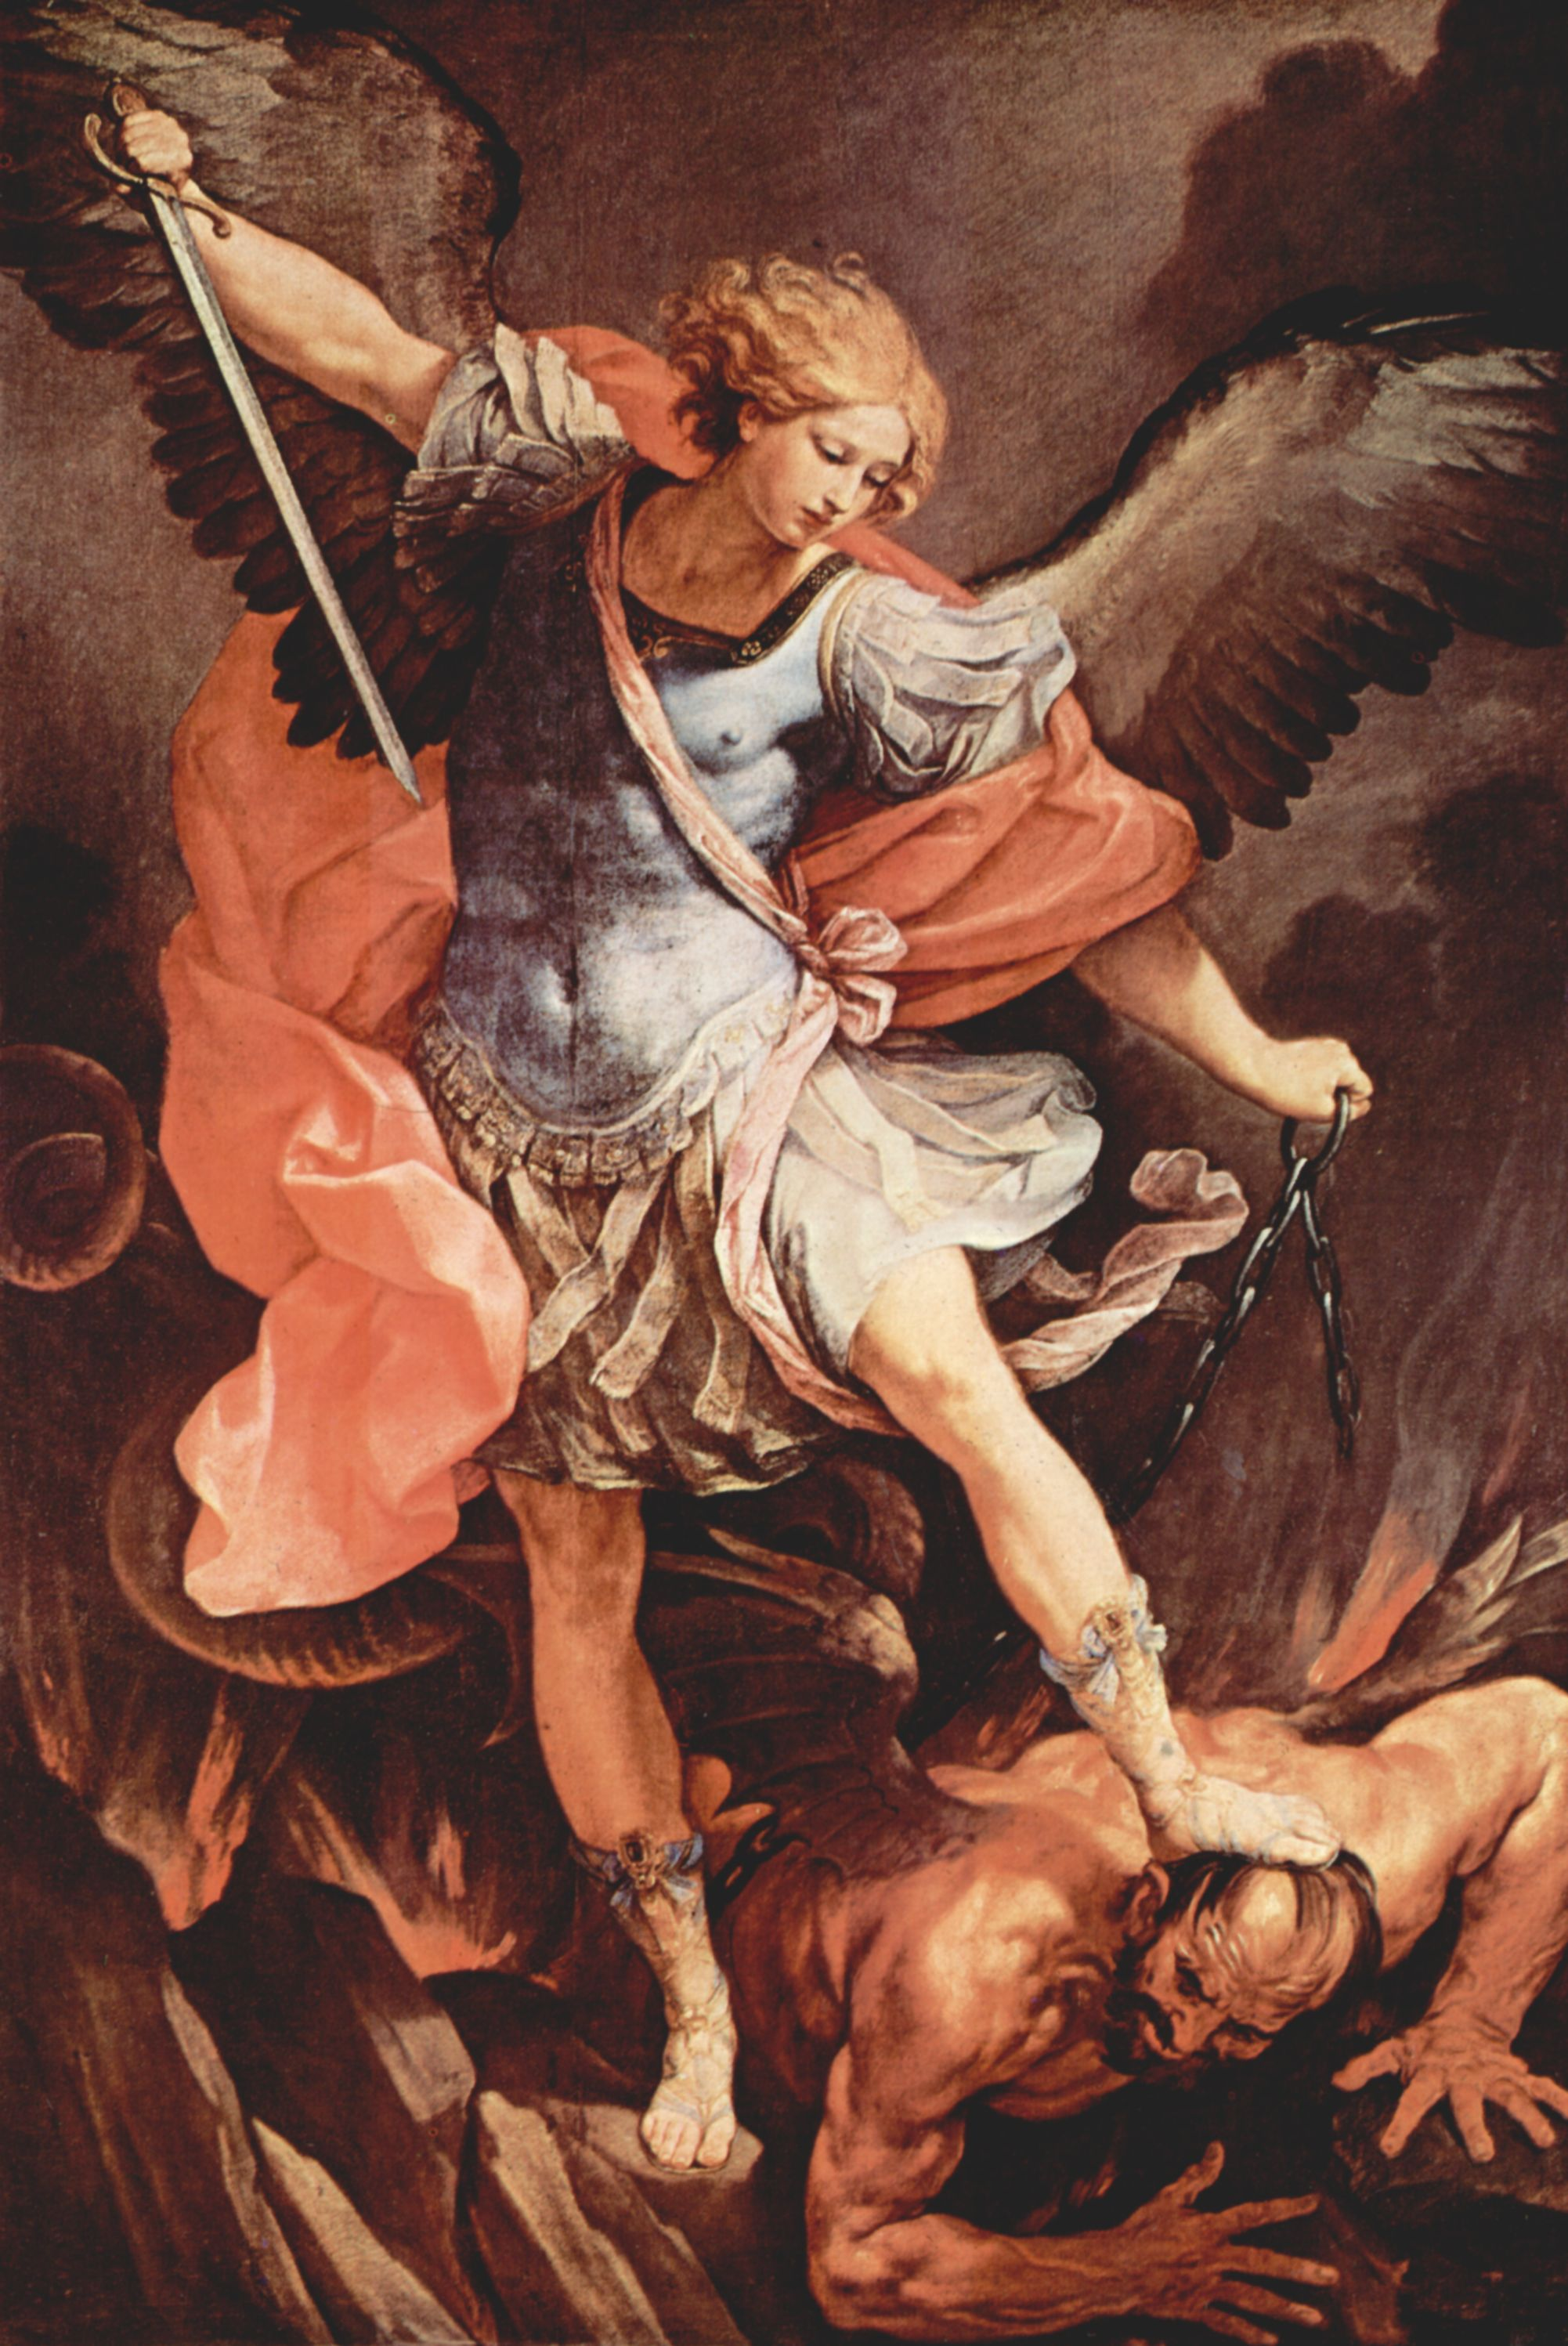 Archangel St Michael Reni, Guido 1636 : Free Download, Borrow, and ...